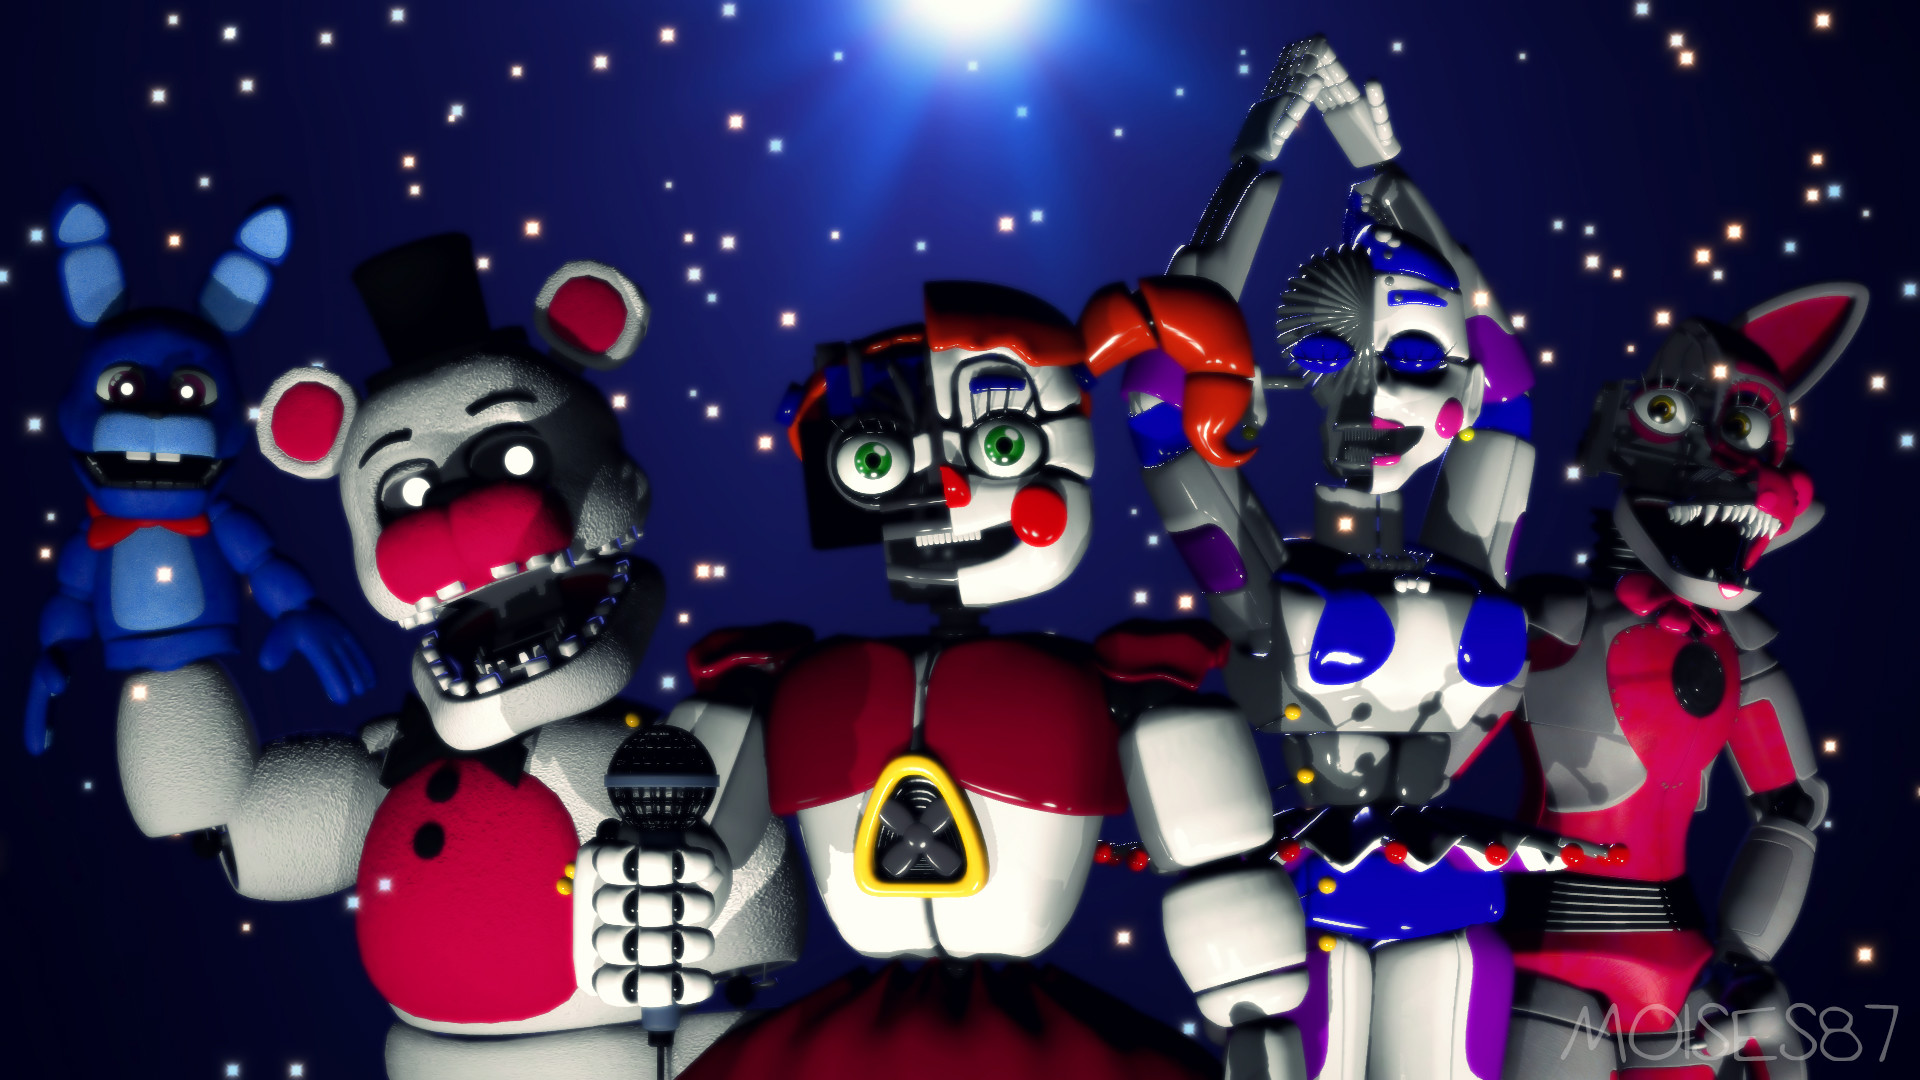 … In The Dark [FNaF Sister Location](Wallpaper 2) by Moises87